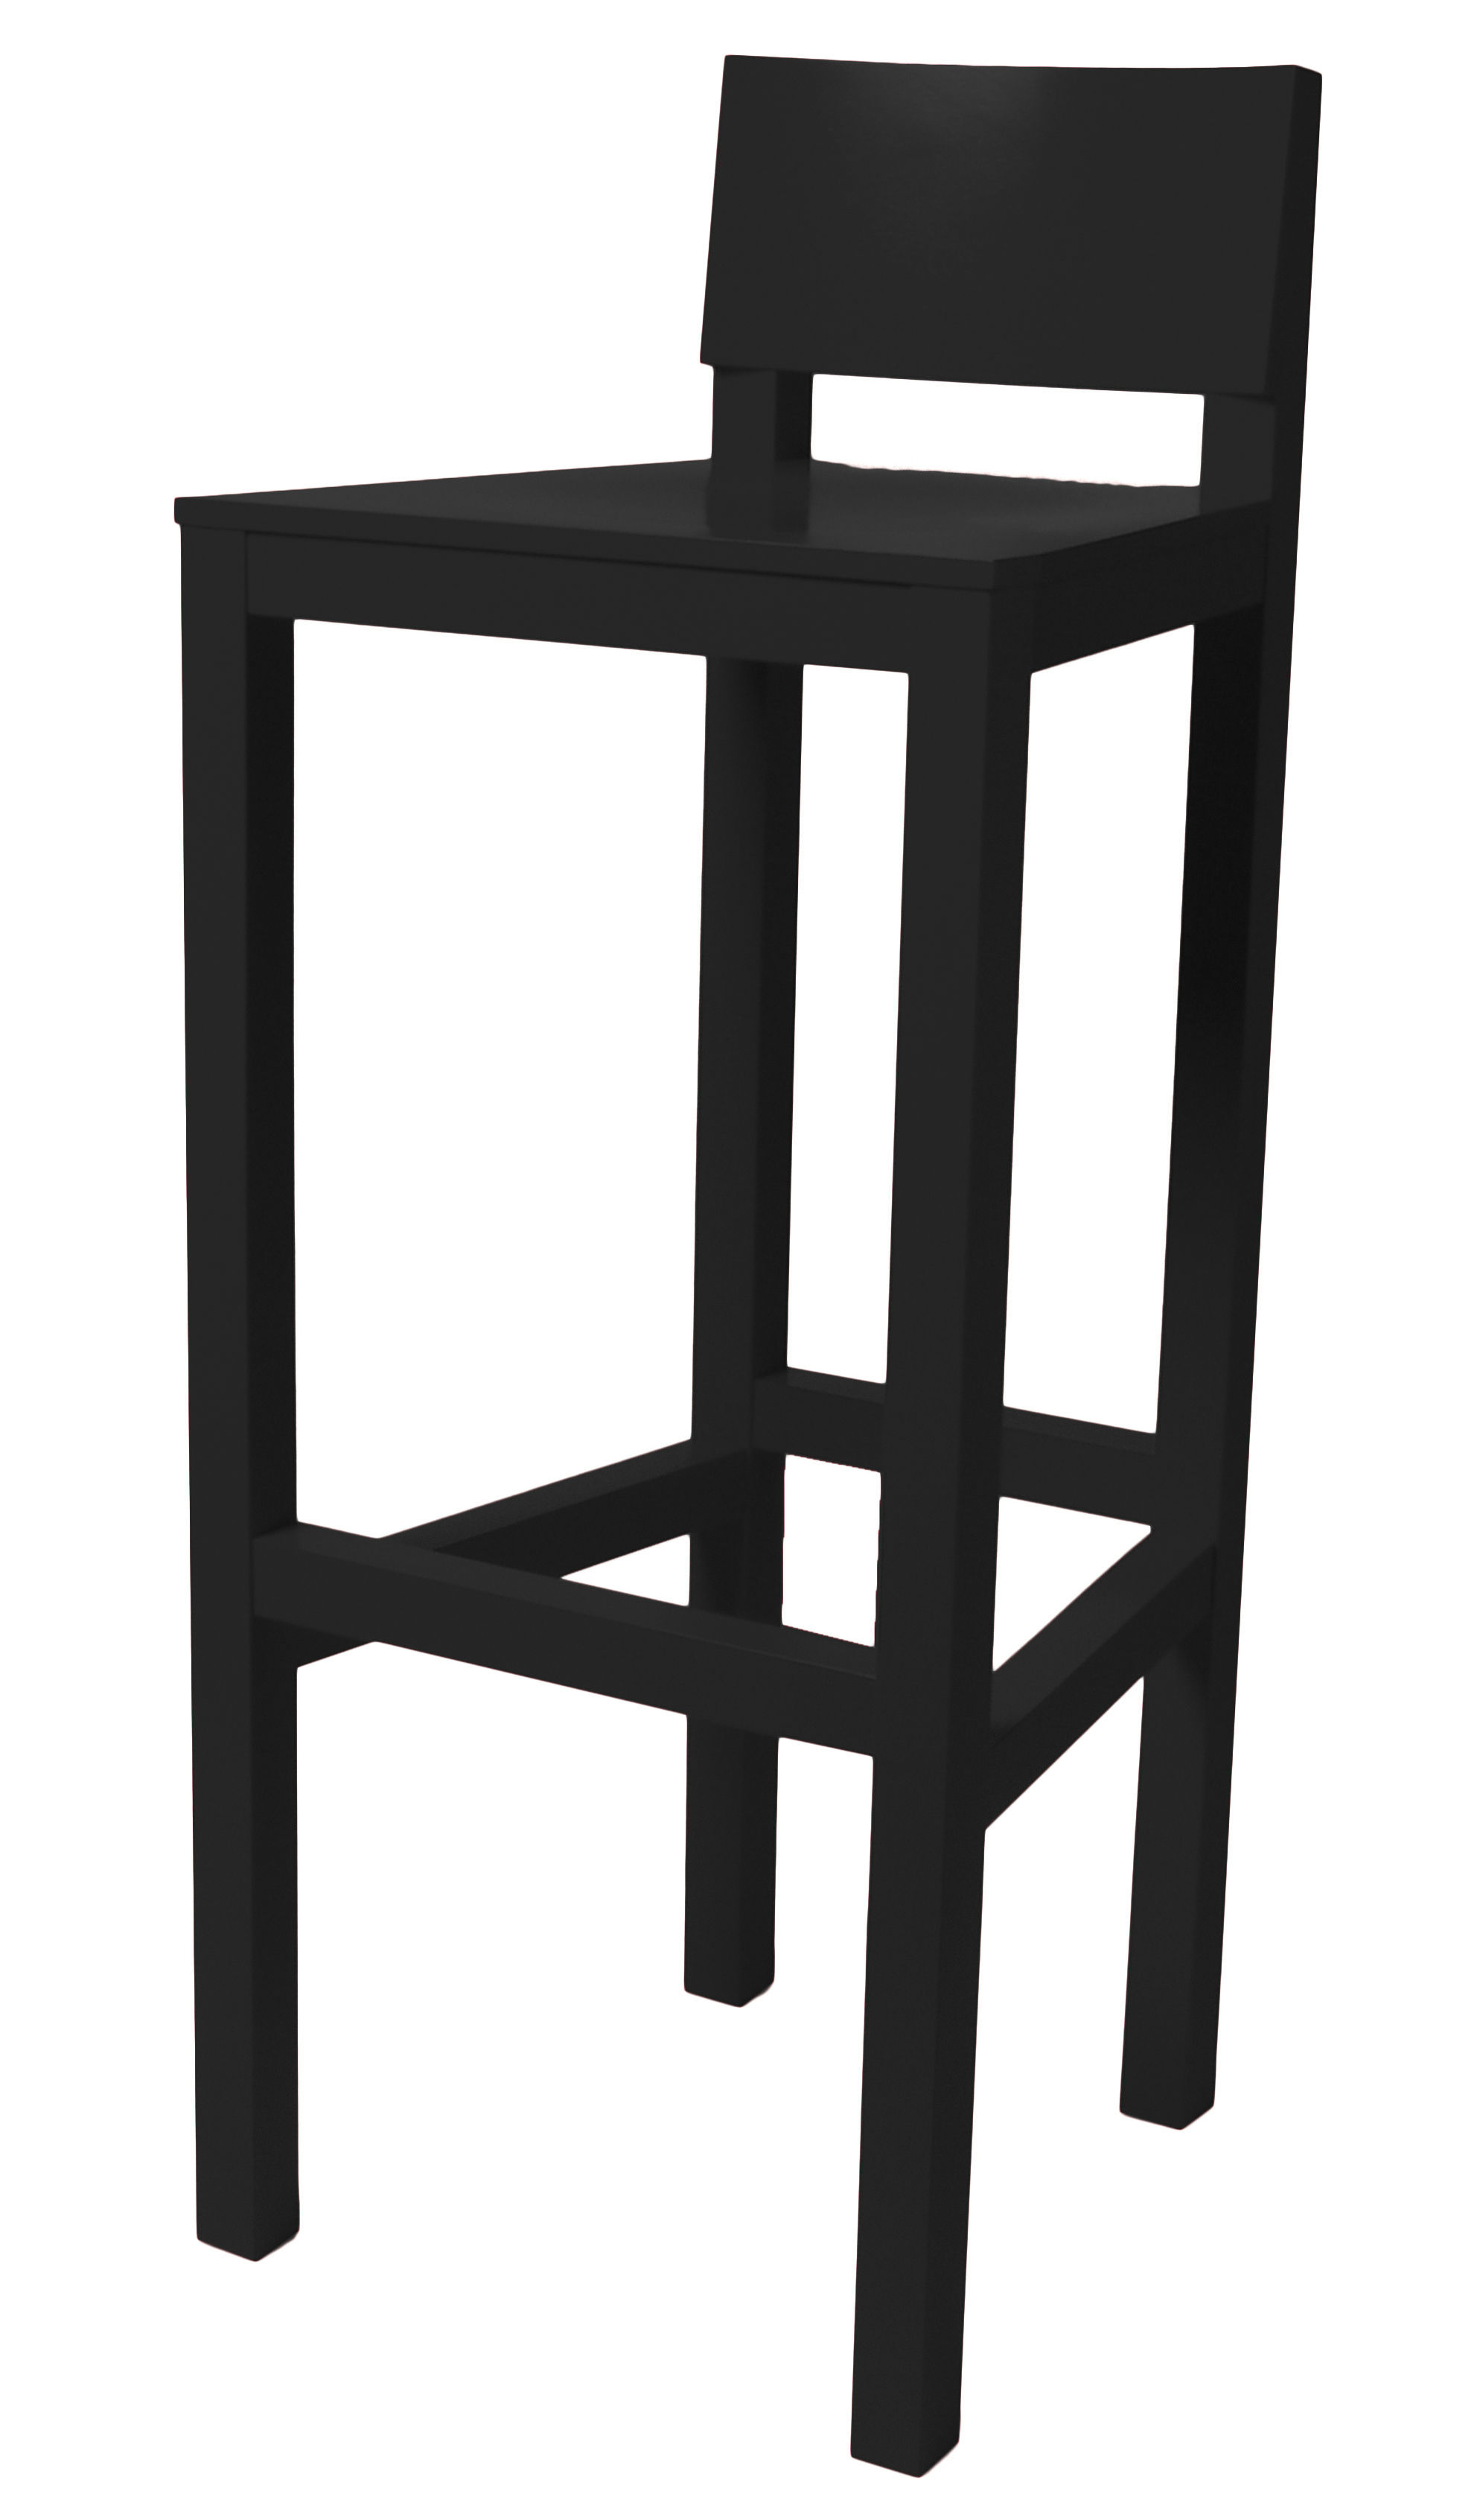 tabouret de bar avl h 80 cm bois noir moooi. Black Bedroom Furniture Sets. Home Design Ideas